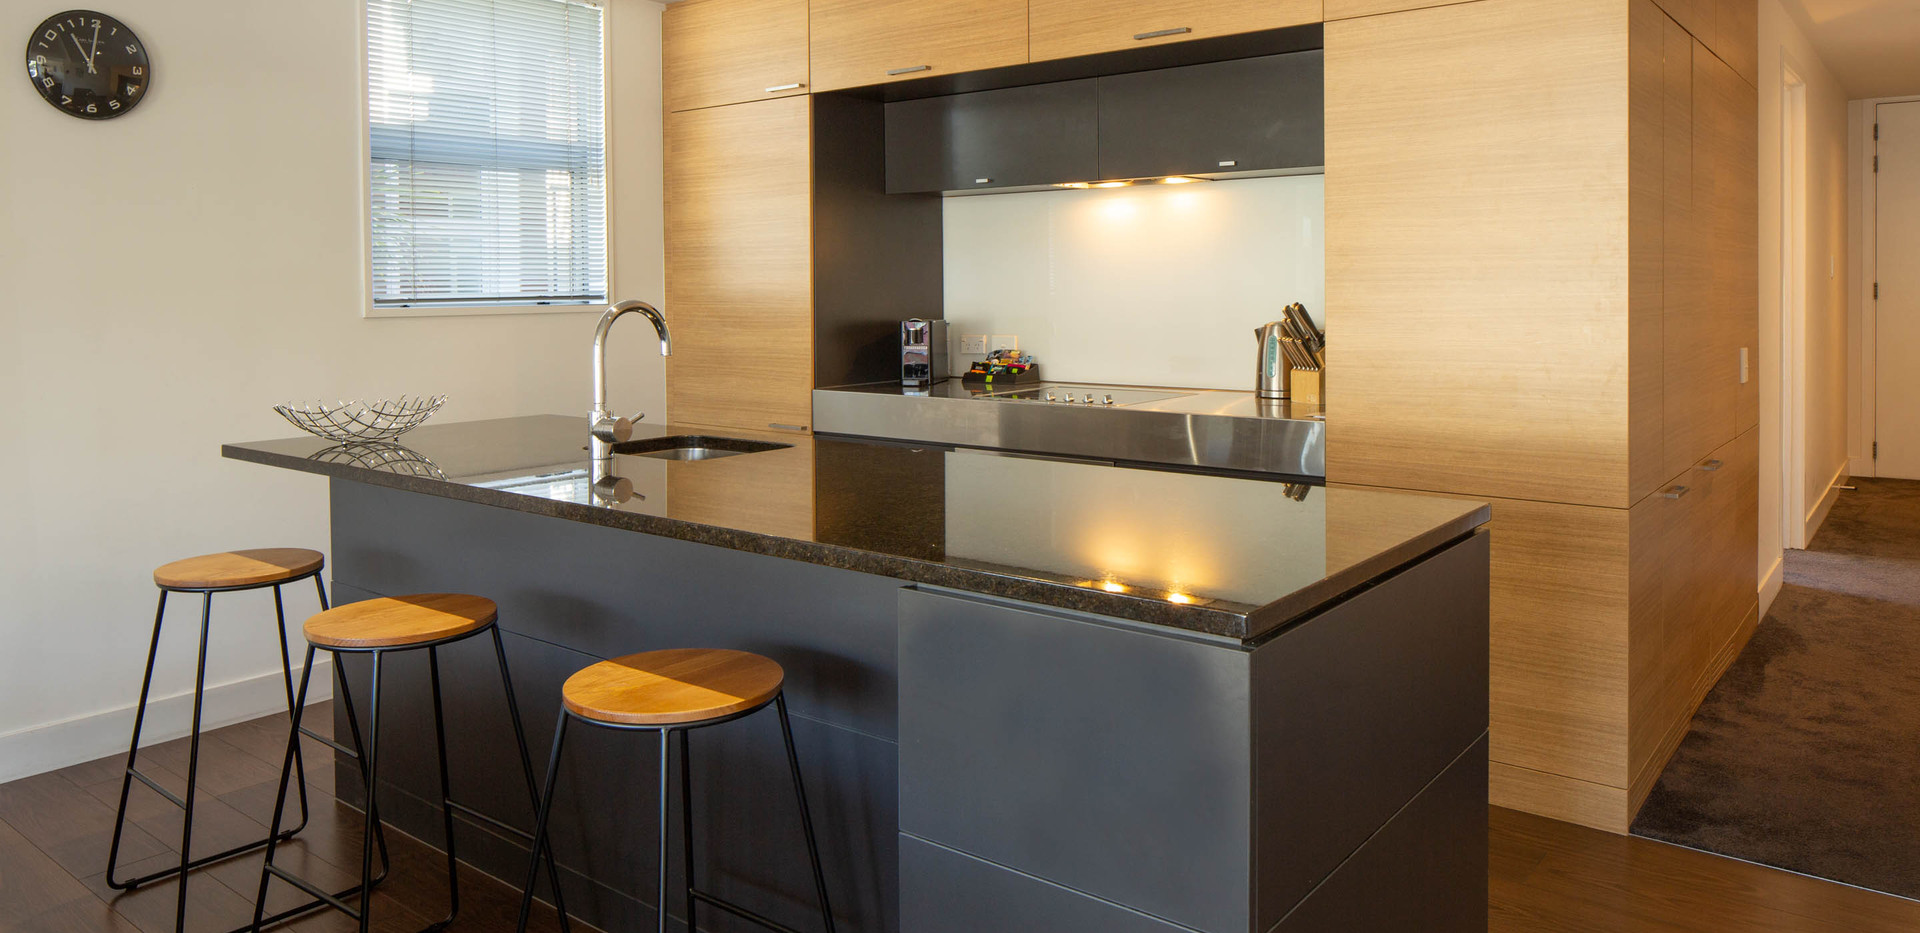 Marina: 2 Bedroom LakesideApartment, Queenstown Stays